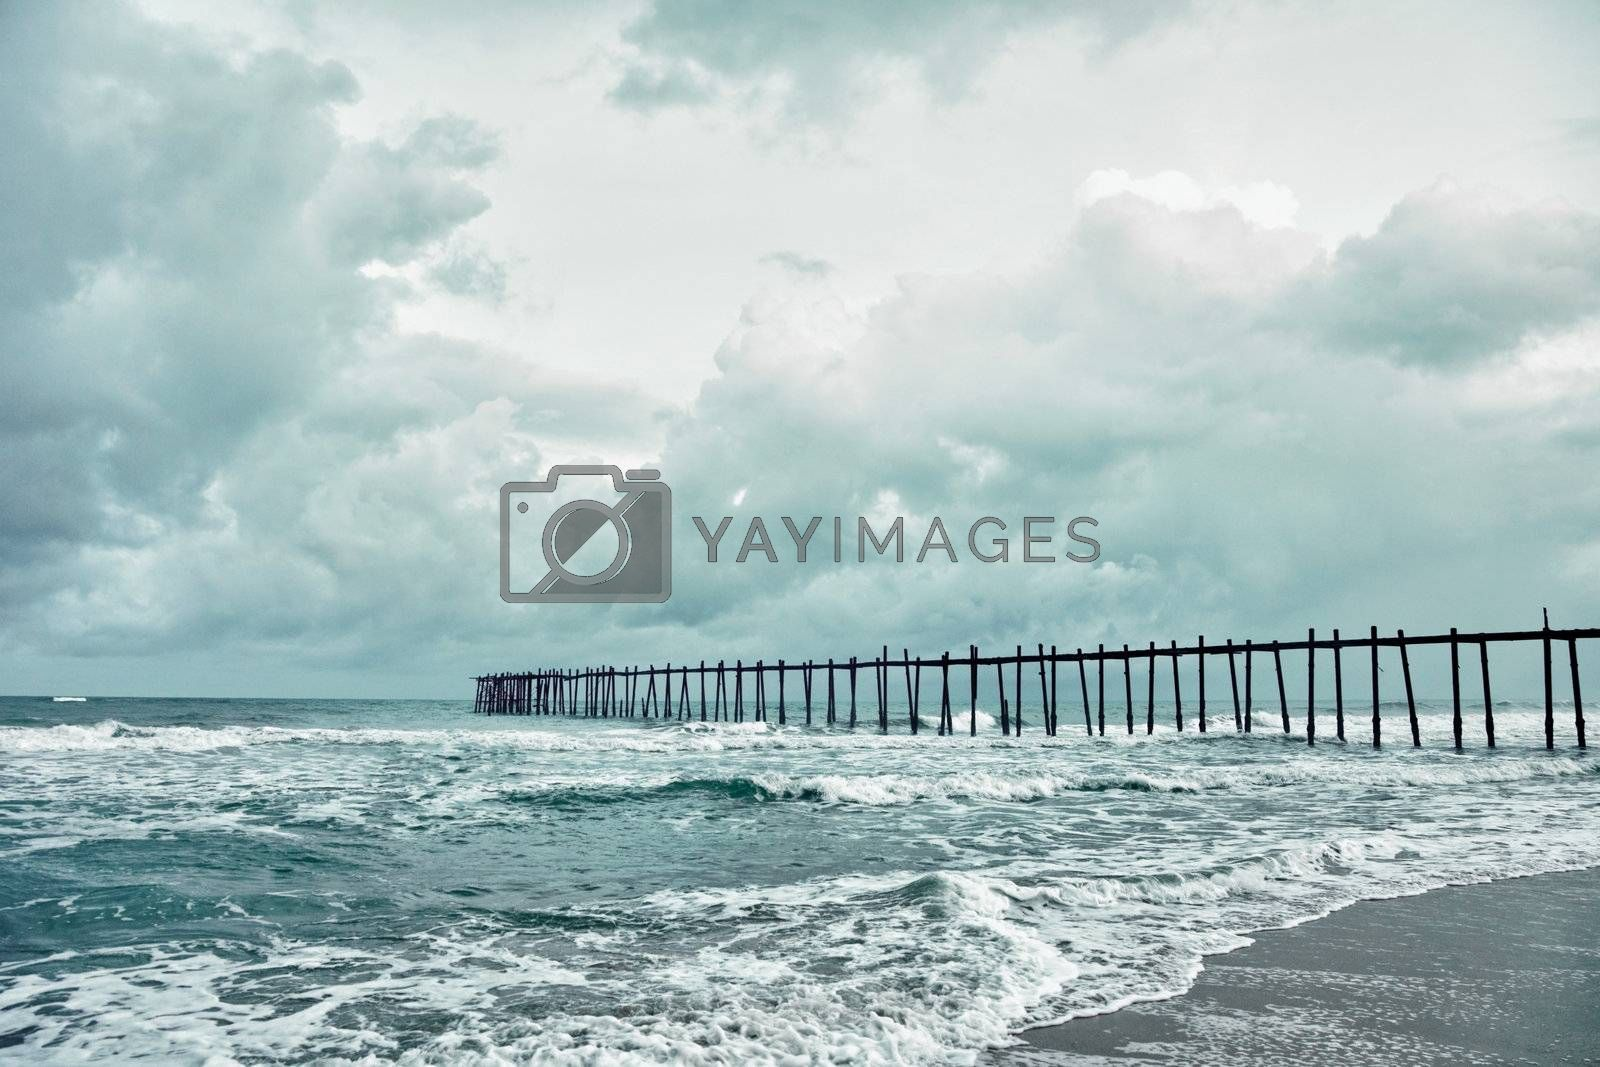 The wooden old jetty over the stormy sea